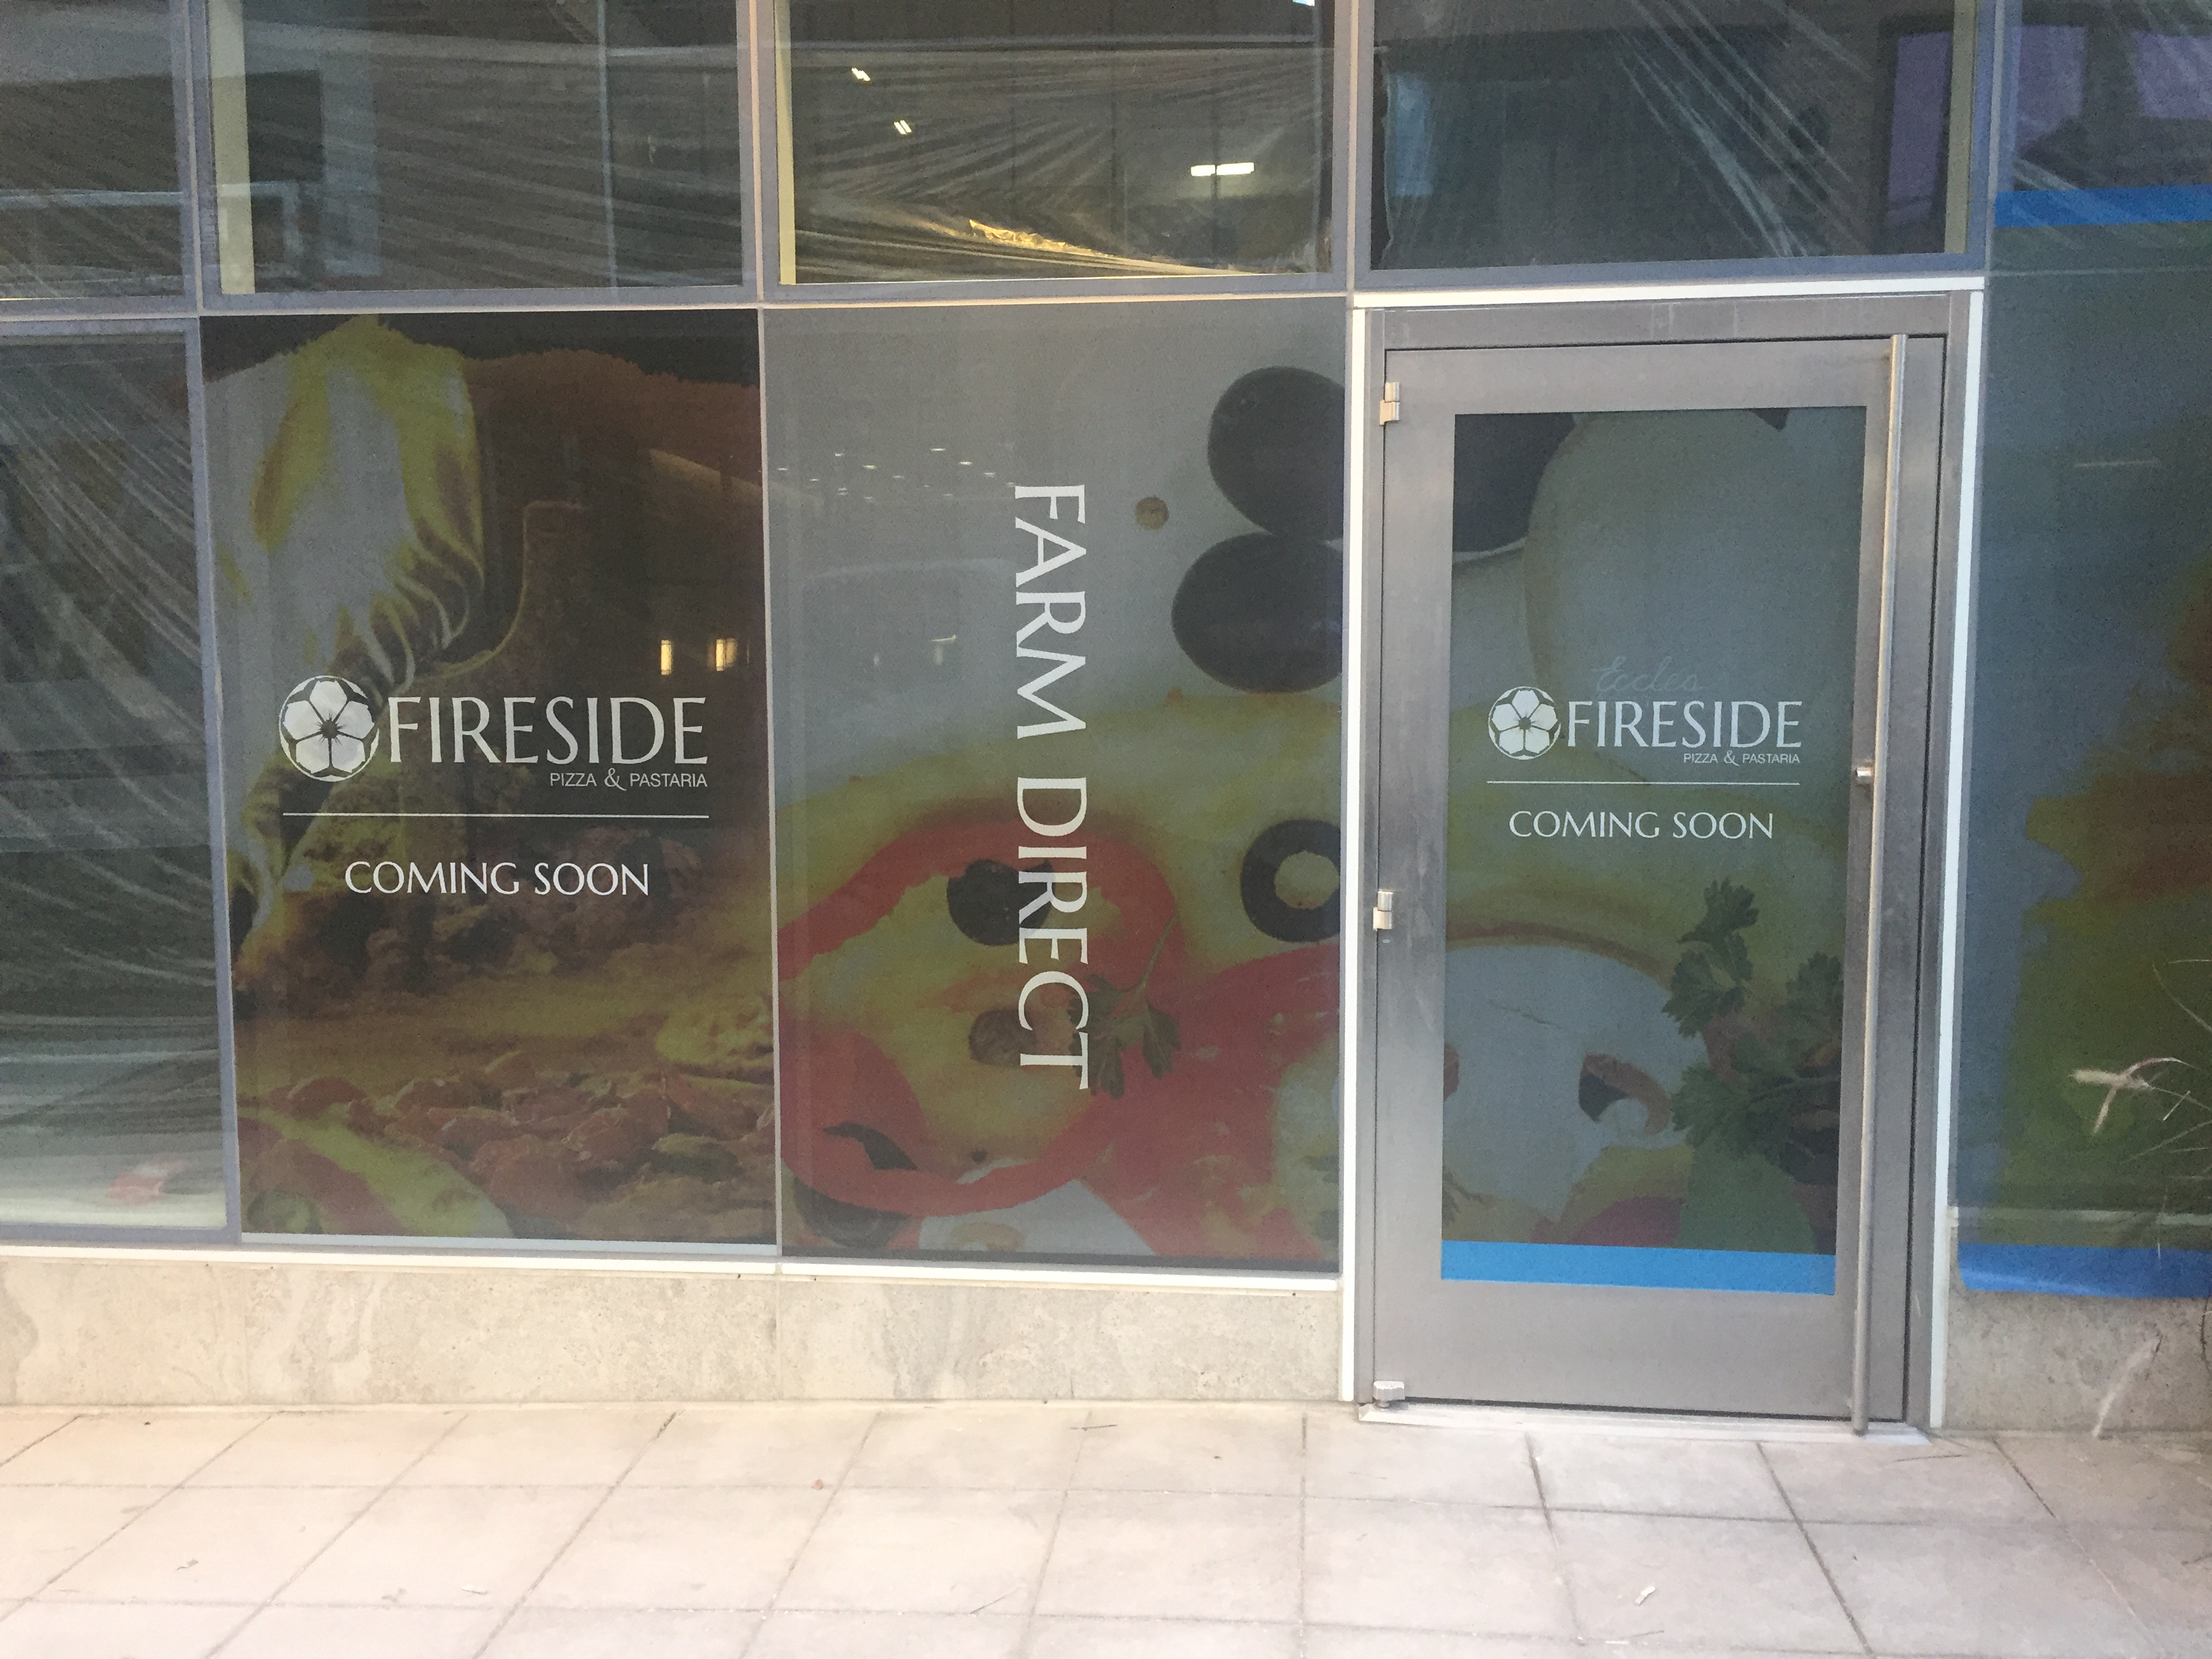 fireside pizza coming soon window_graphics